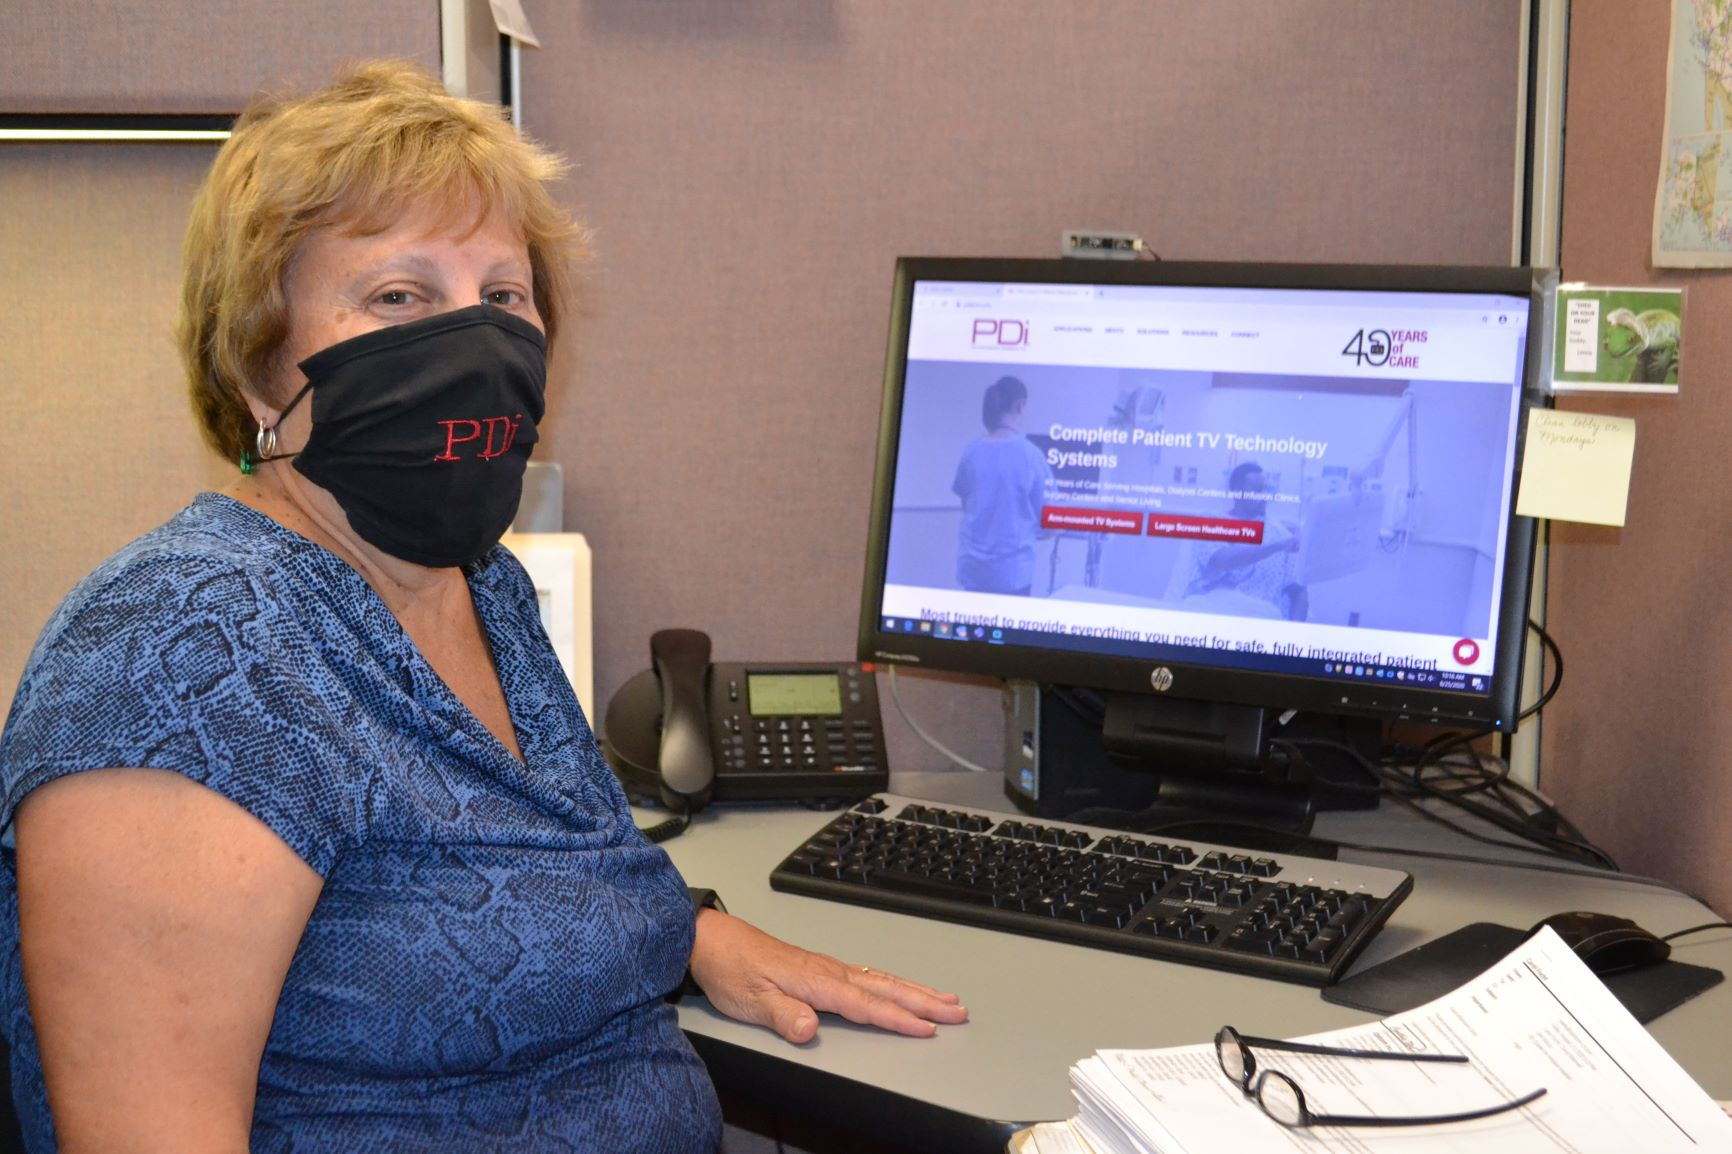 MR PDi COVID Safe Practices Mask in Office Carol